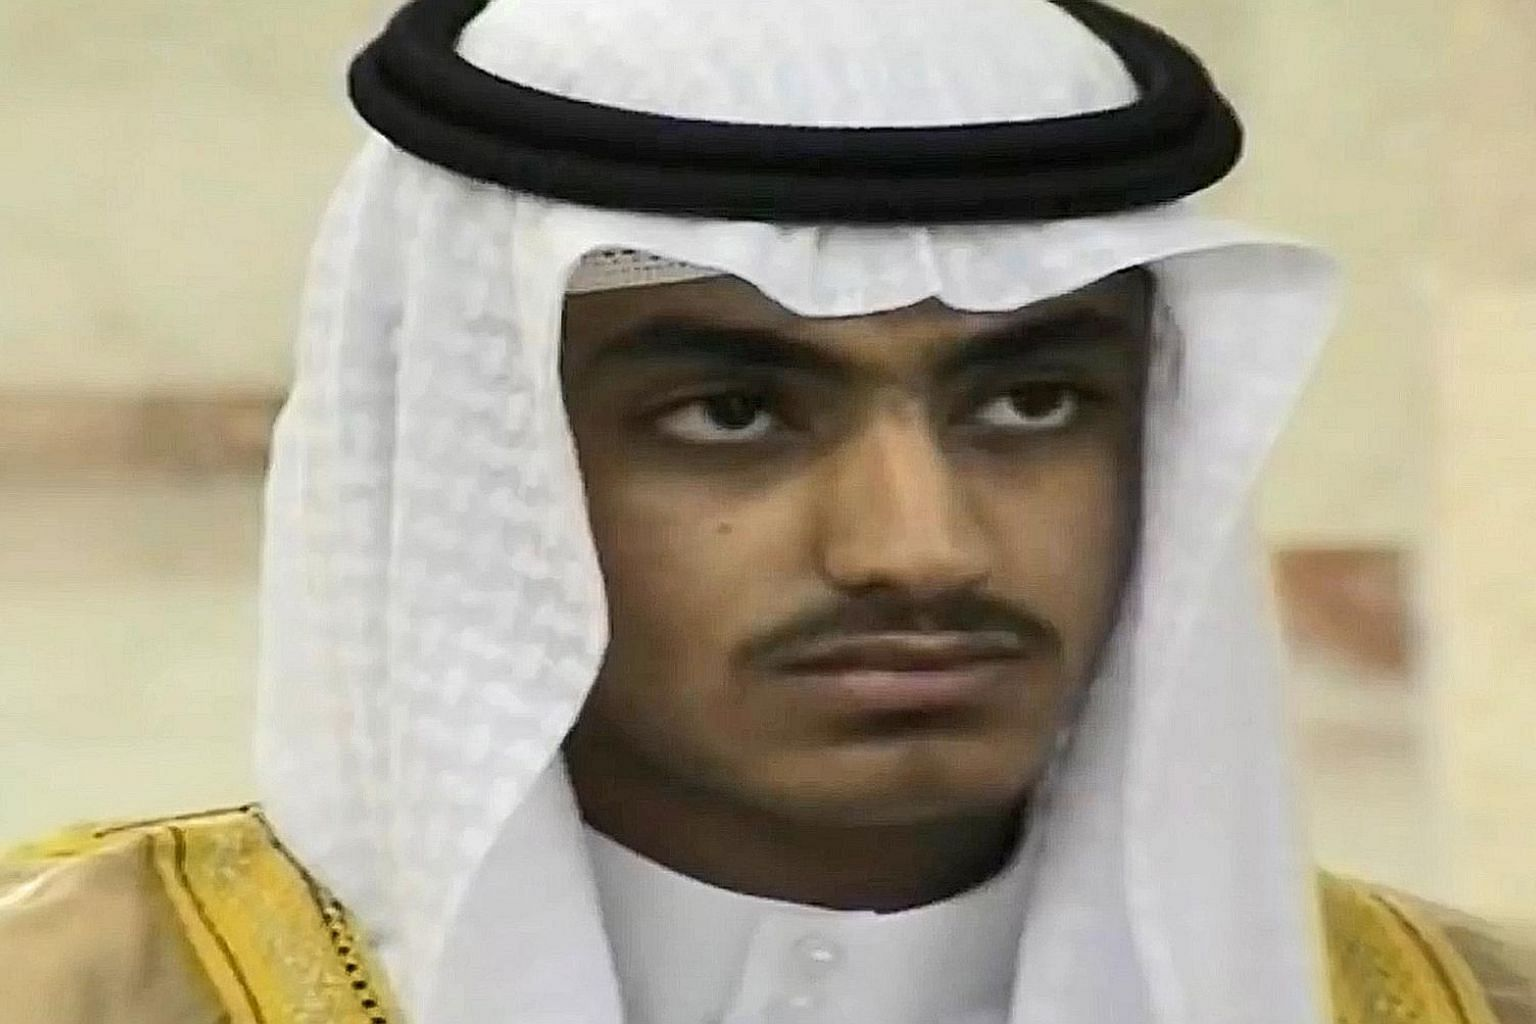 Hamza bin Laden was reportedly killed some time in the past two years, according to two US officials.